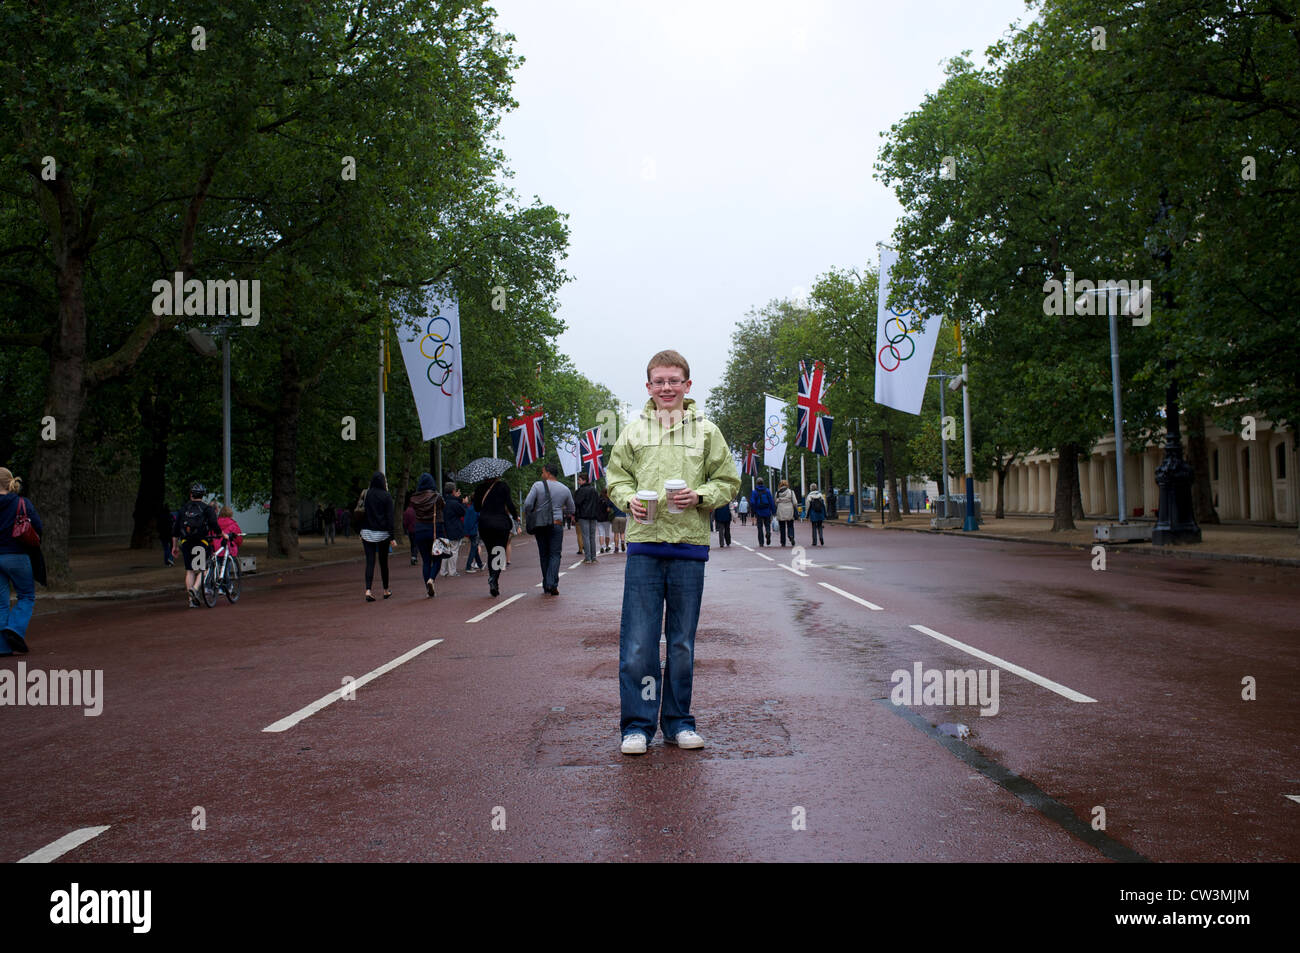 Supporter standing on wet day at the London Olympics 2012 with Olympic flags - Stock Image